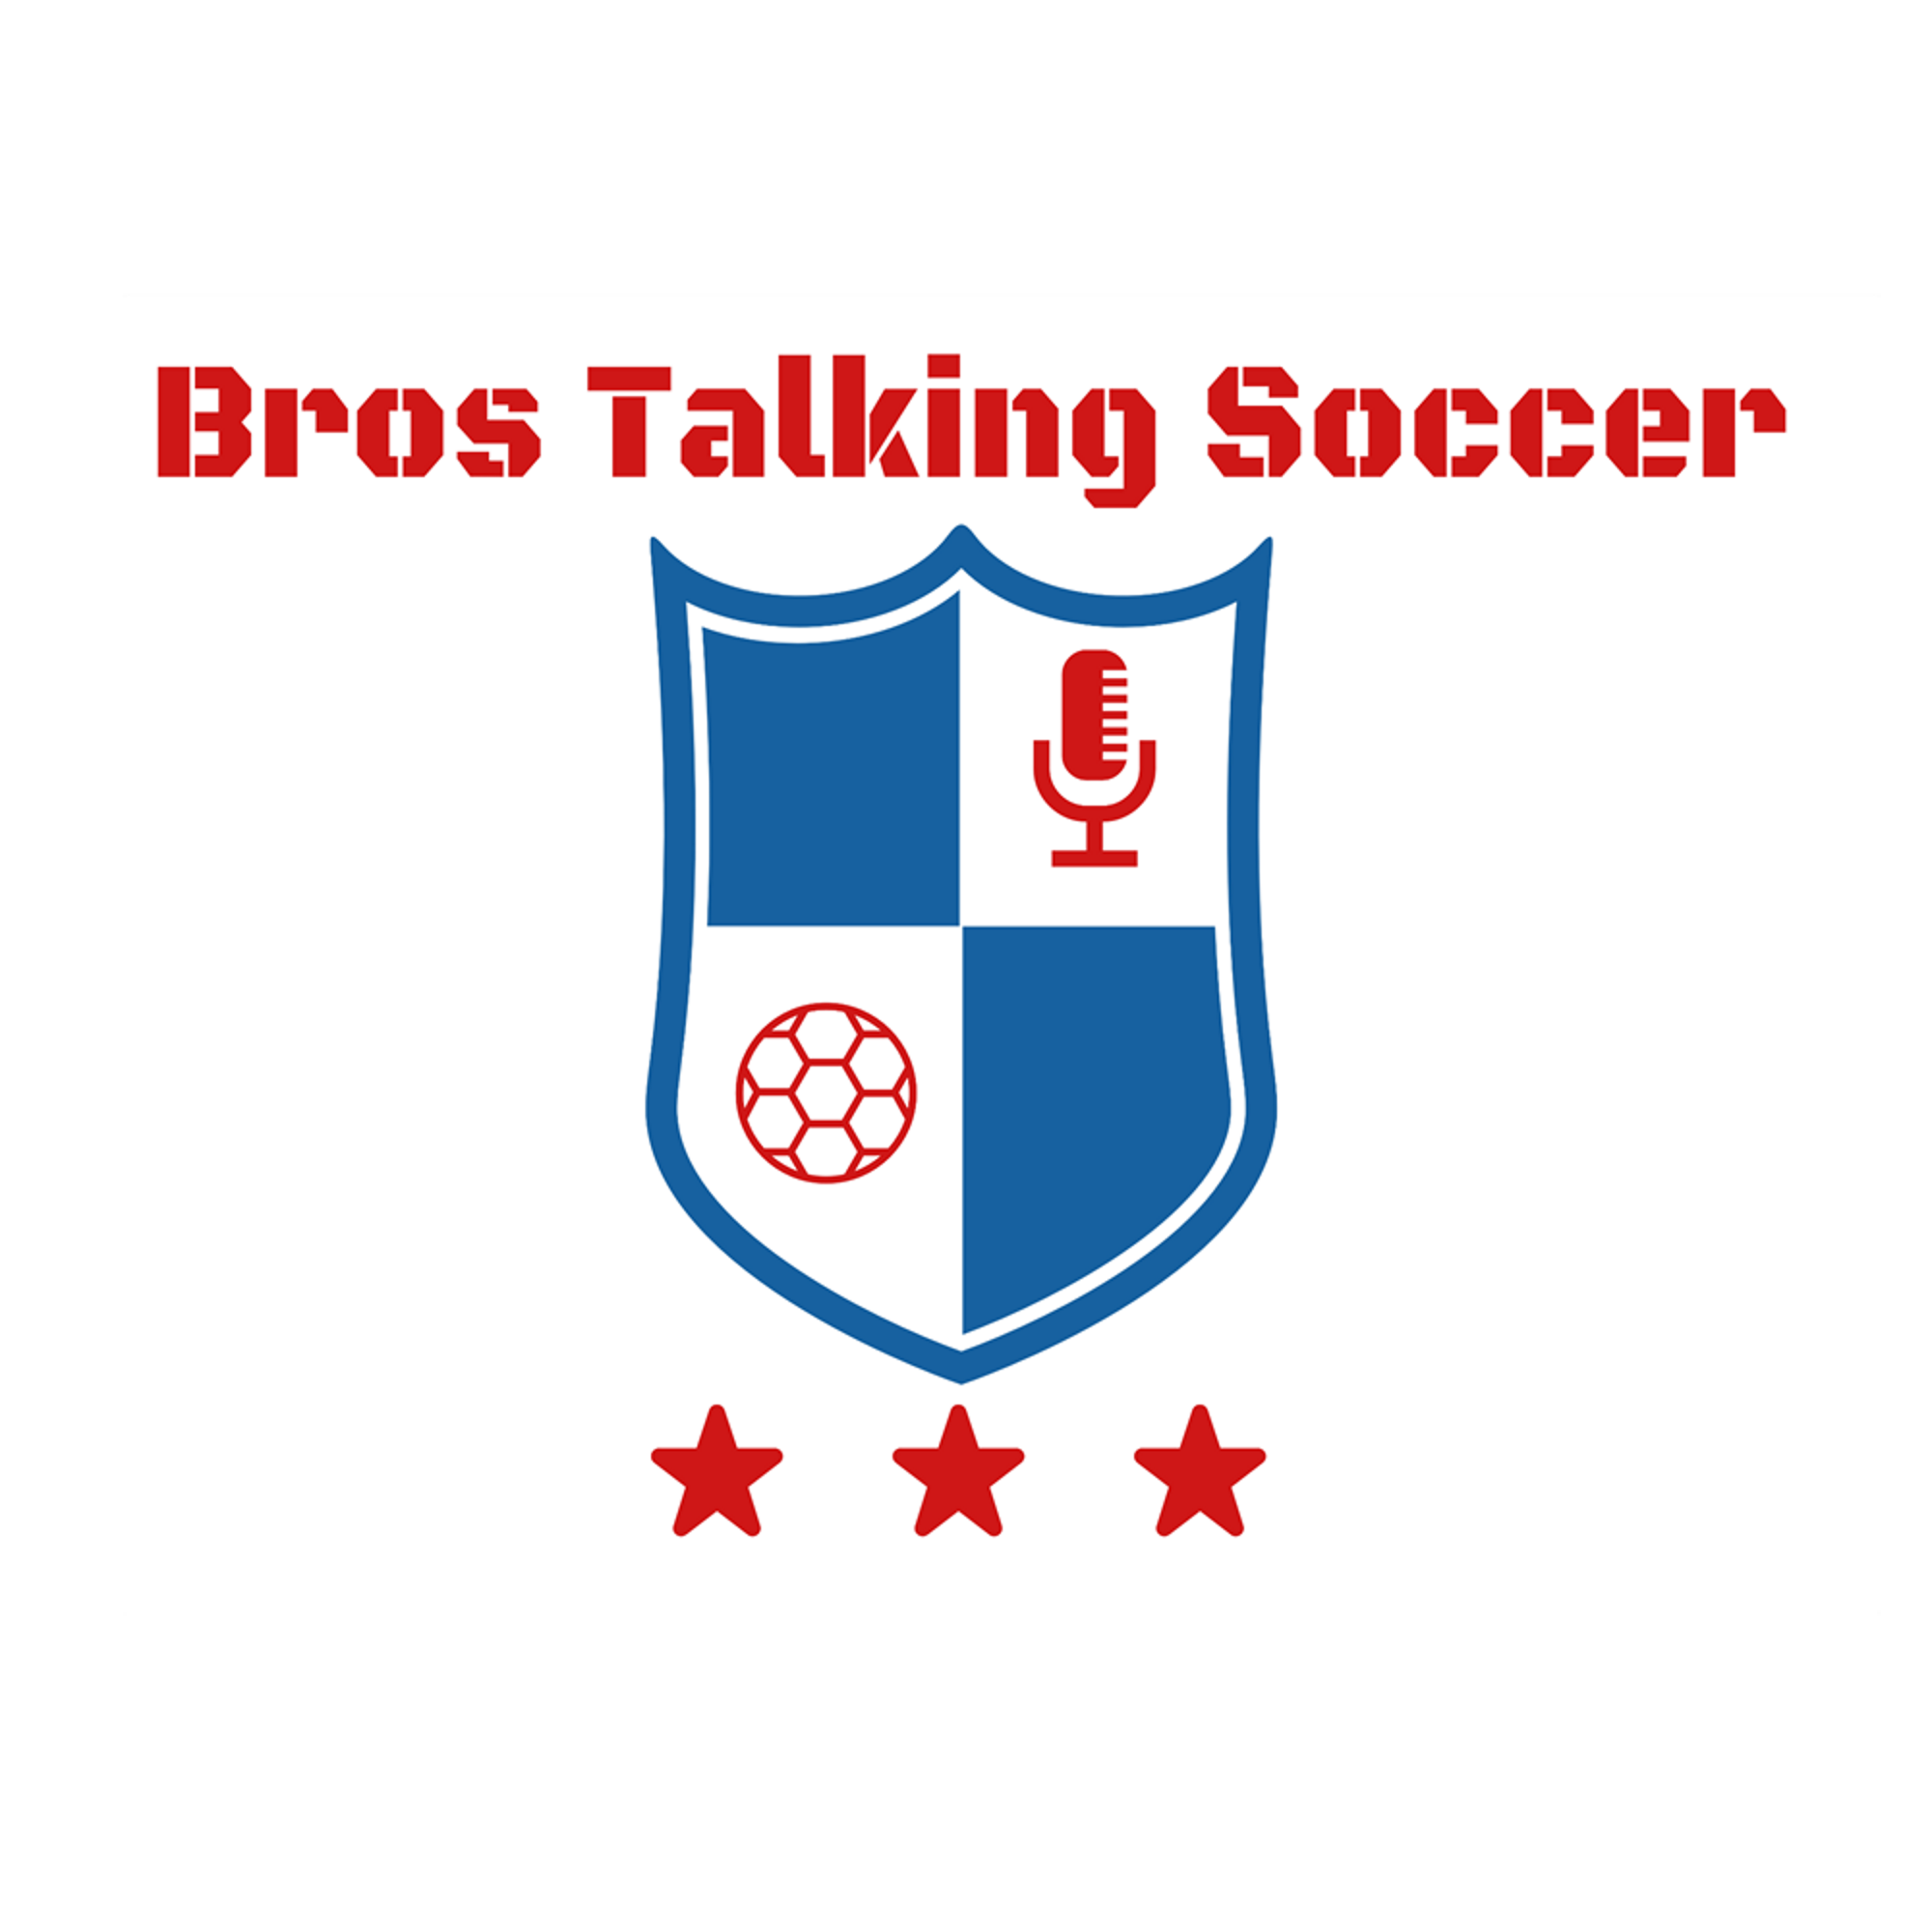 Interview with Pete Carcia from the Between The Sticks Podcast